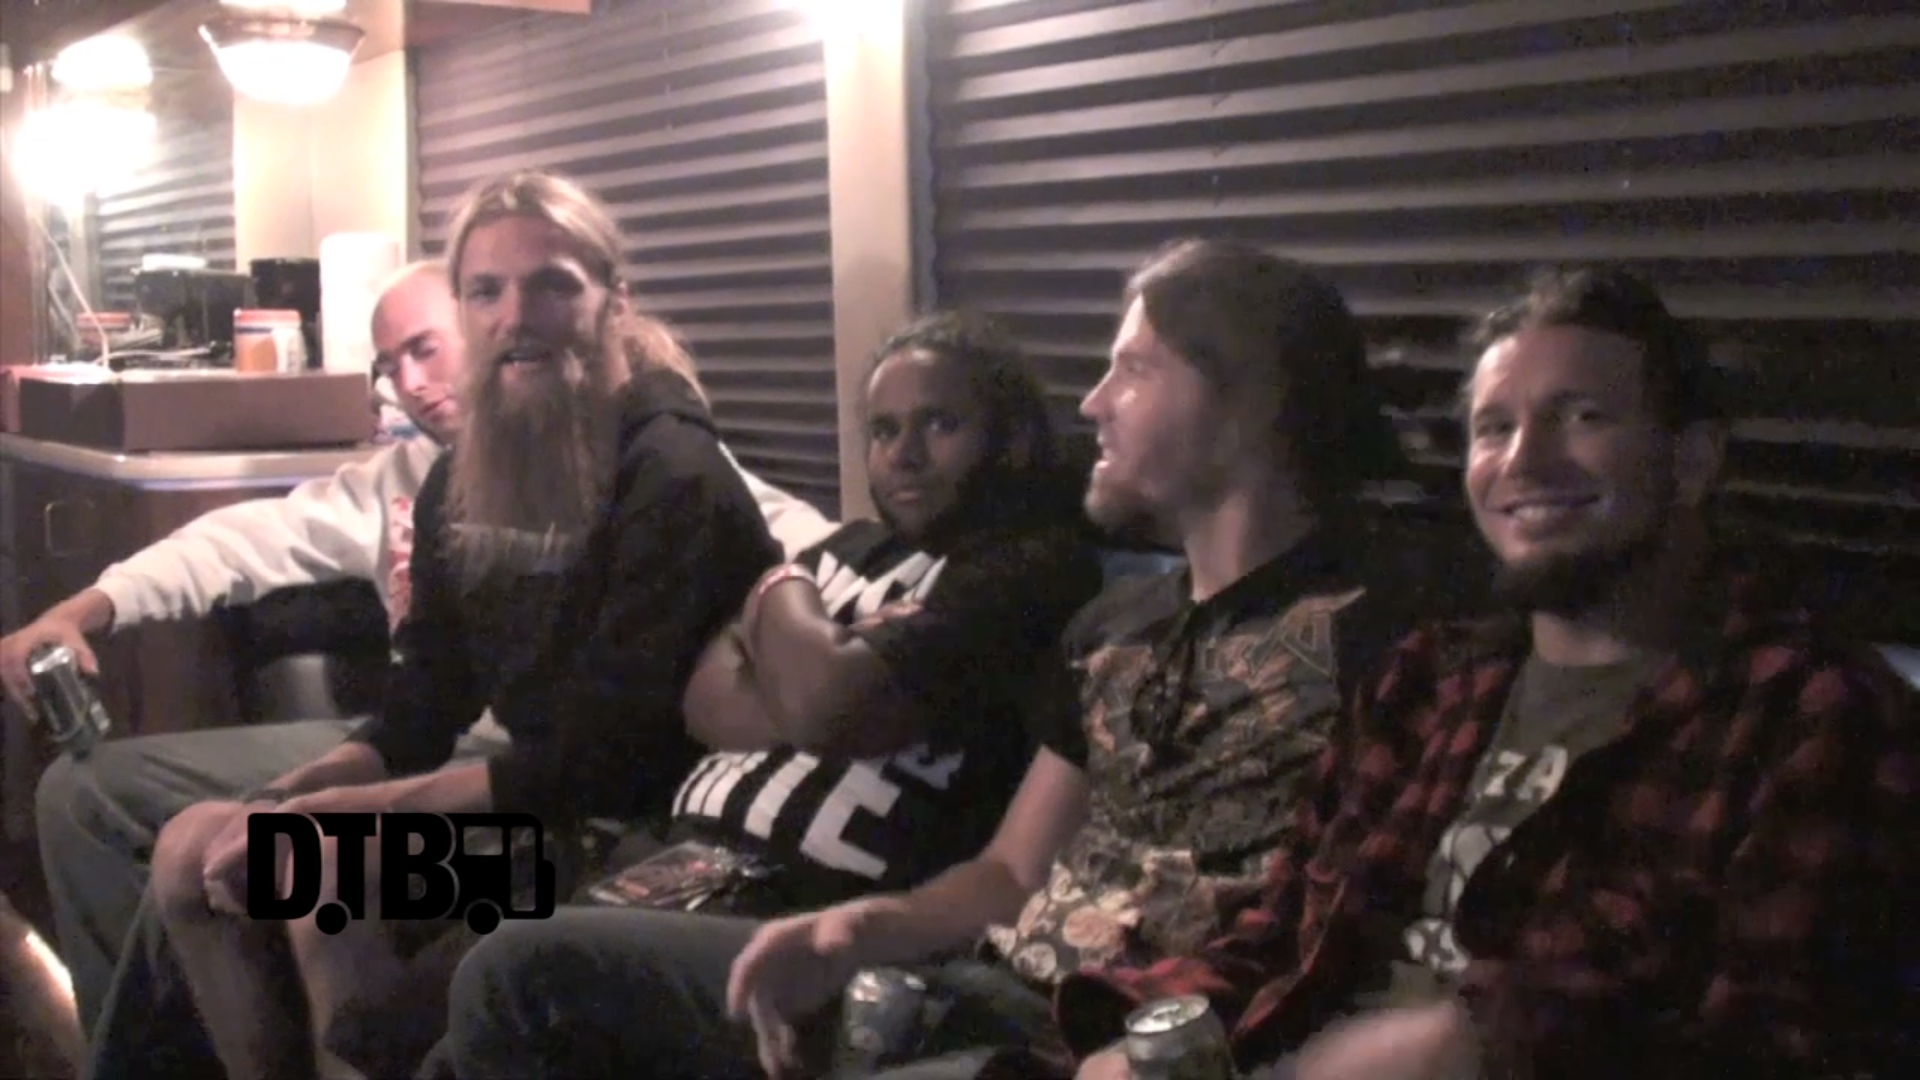 Battlecross – CRAZY TOUR STORIES [VIDEO]